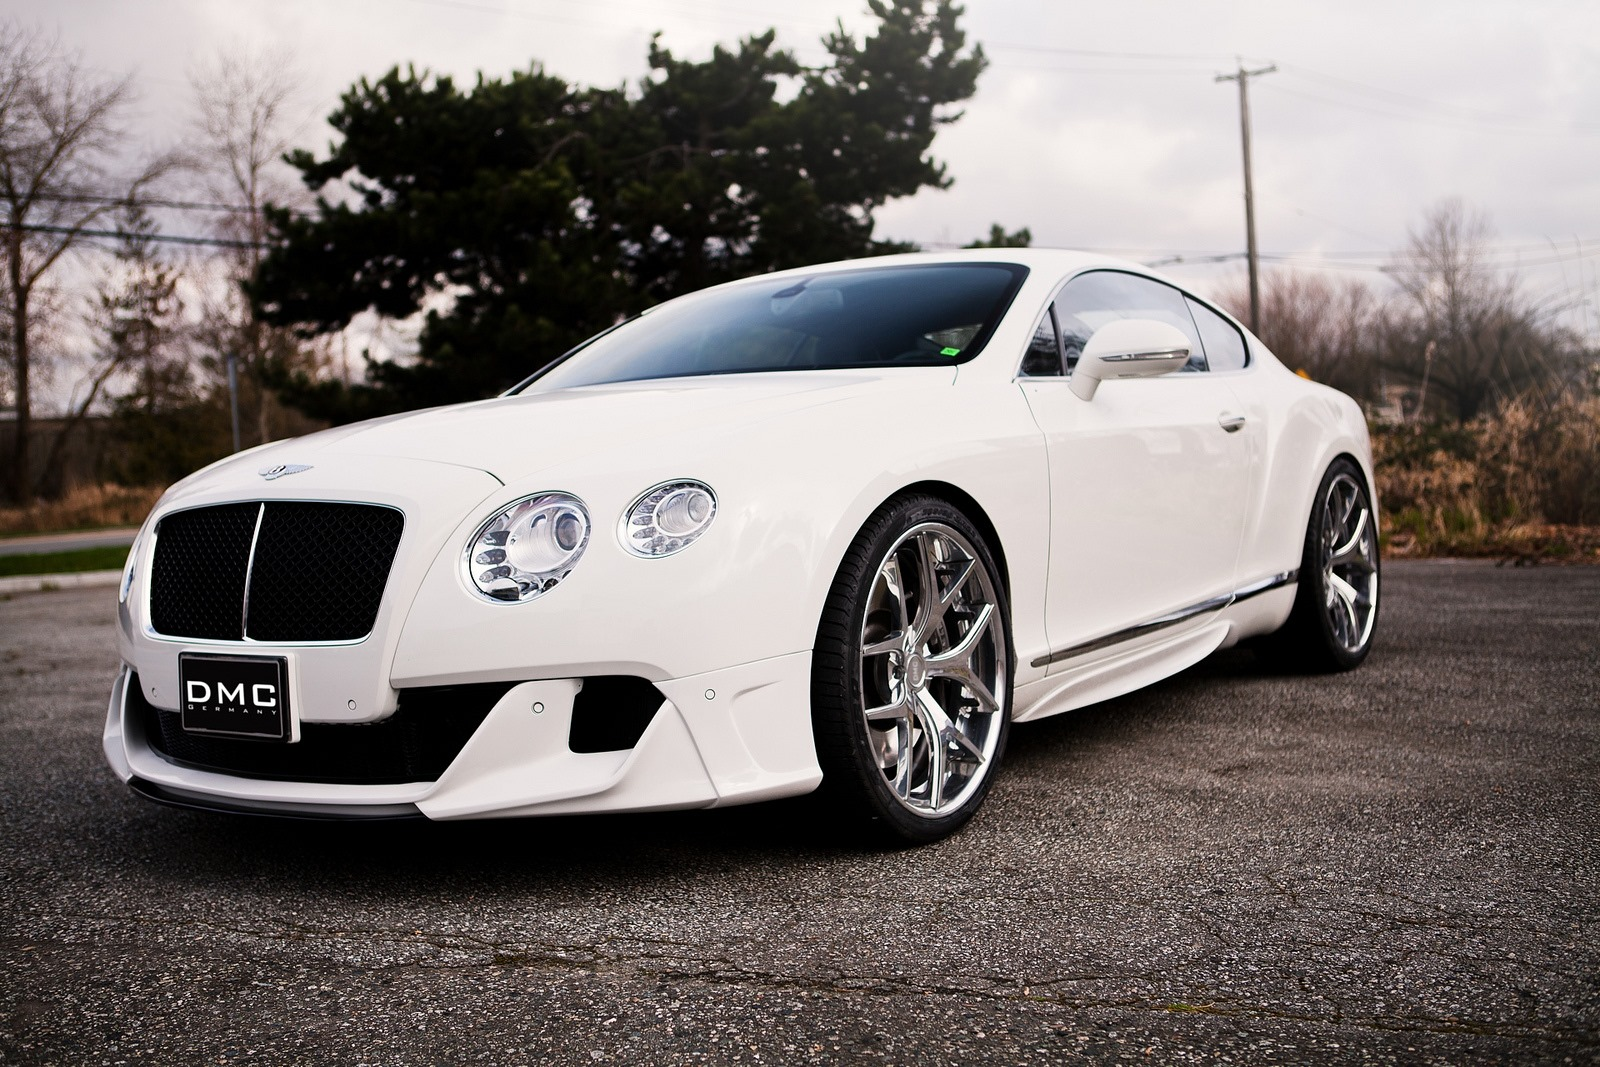 2013 bentley continental gt gets awesome dmc body kit autoevolution dmc duro bentley continental gt body kit vanachro Images